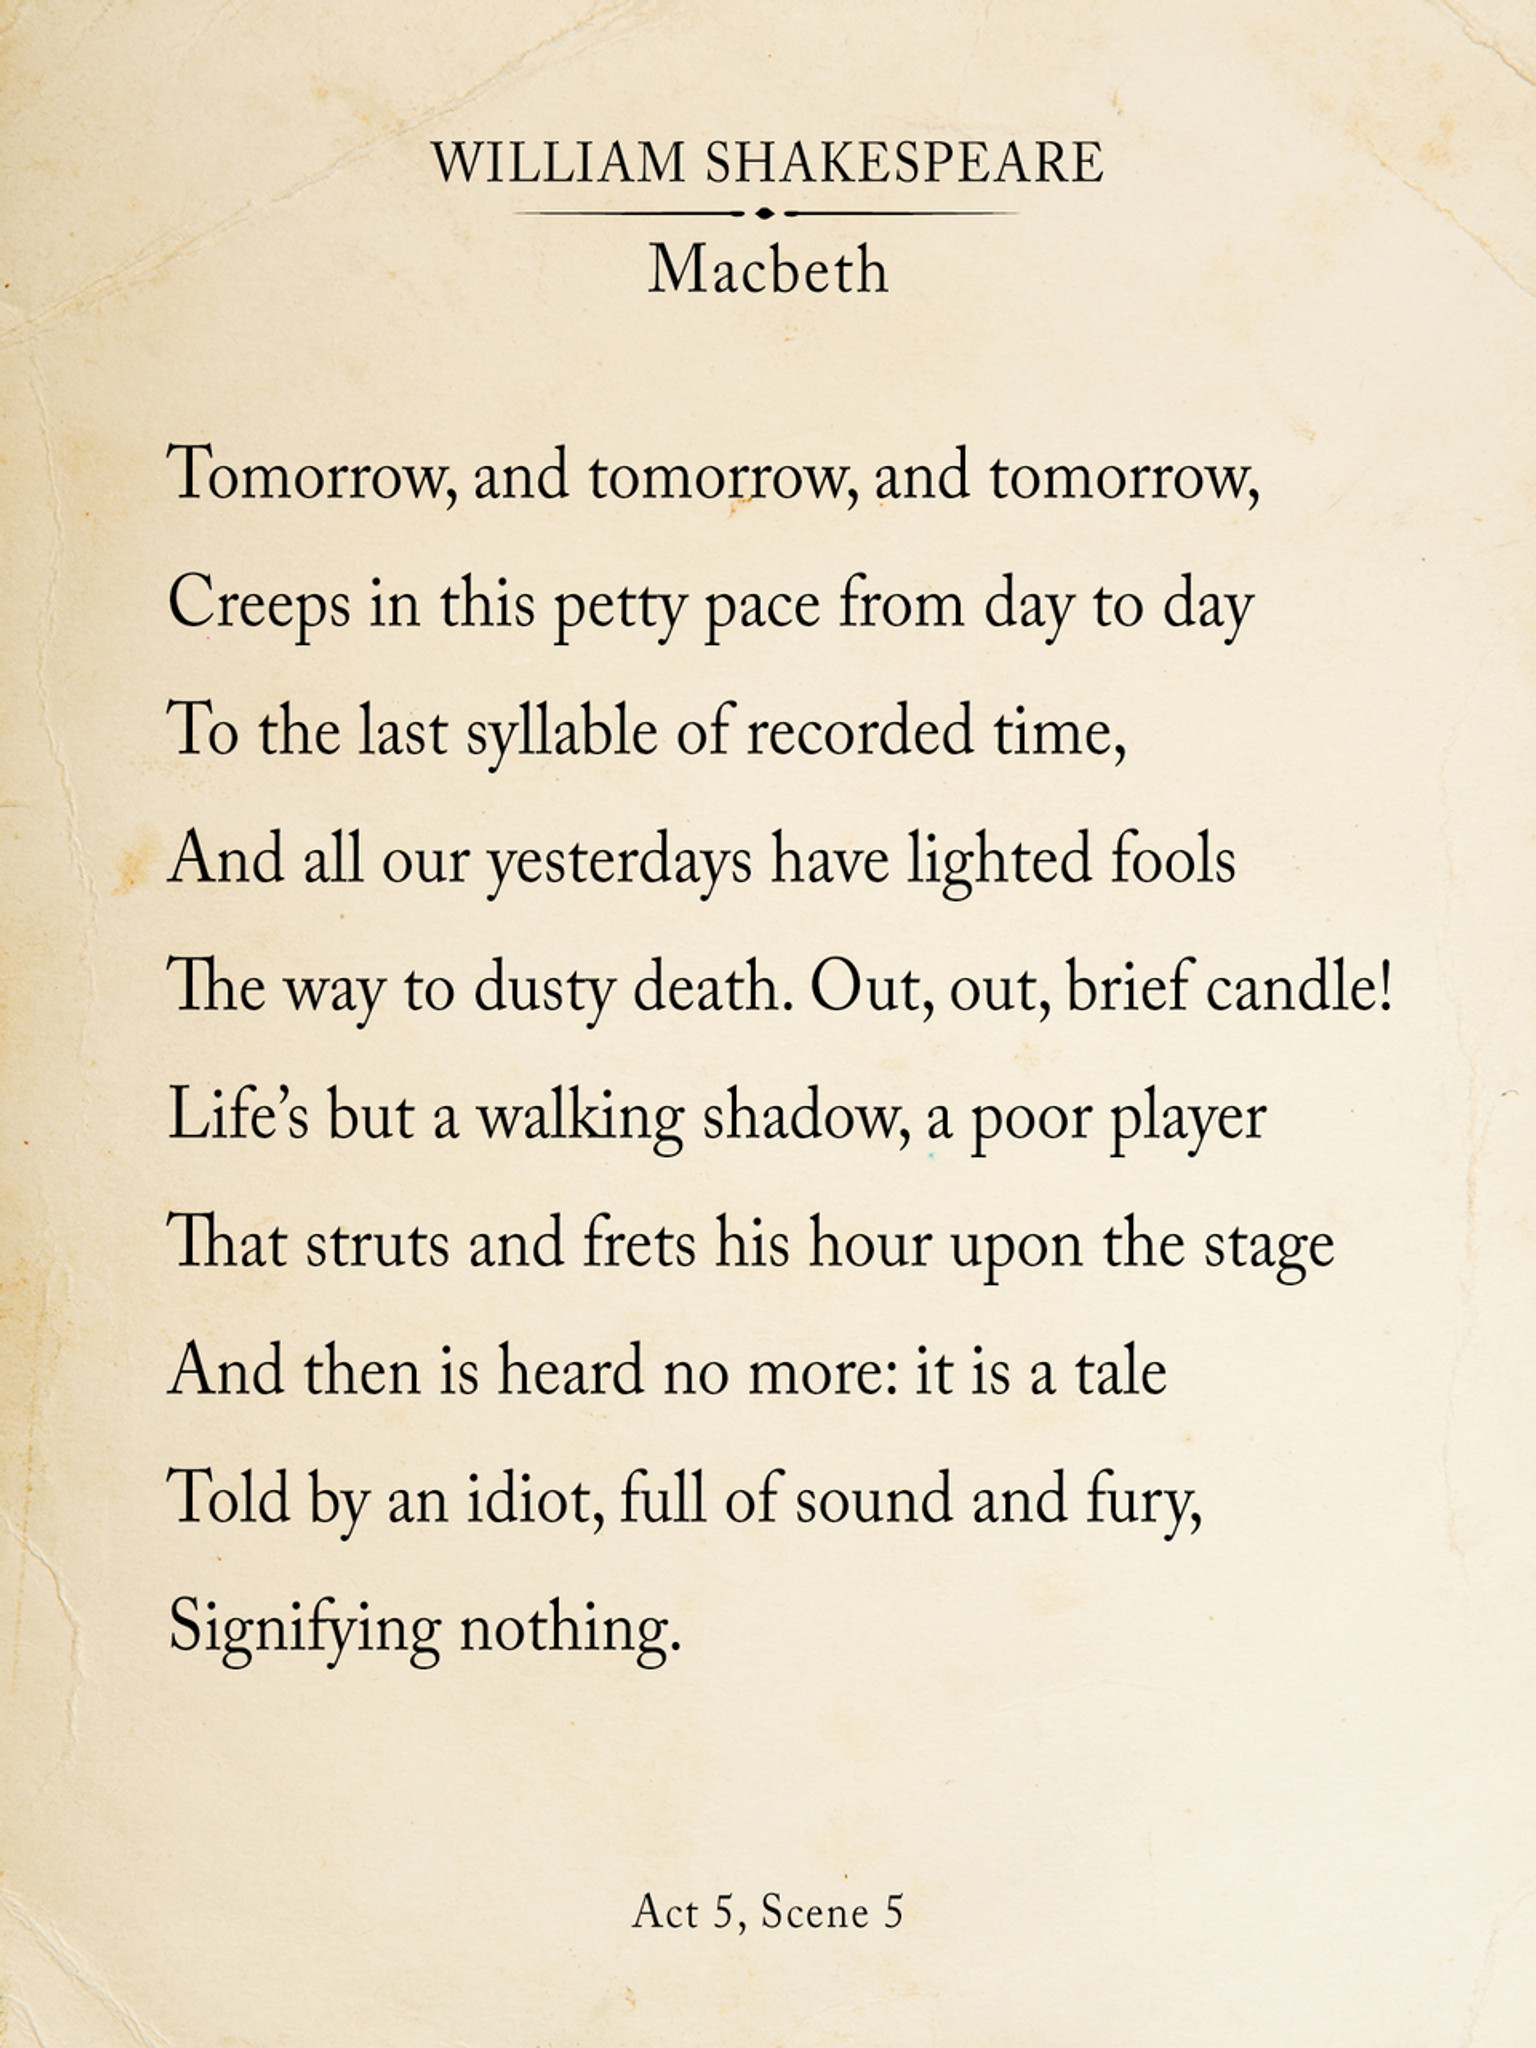 Macbeth Out Brief Candle Shakespeare Book Page Style Literary Quote Print Fine Art Paper Laminated Or Framed Multiple Size Echo Lit Tomorrow Soliloquy Analysis Analysi